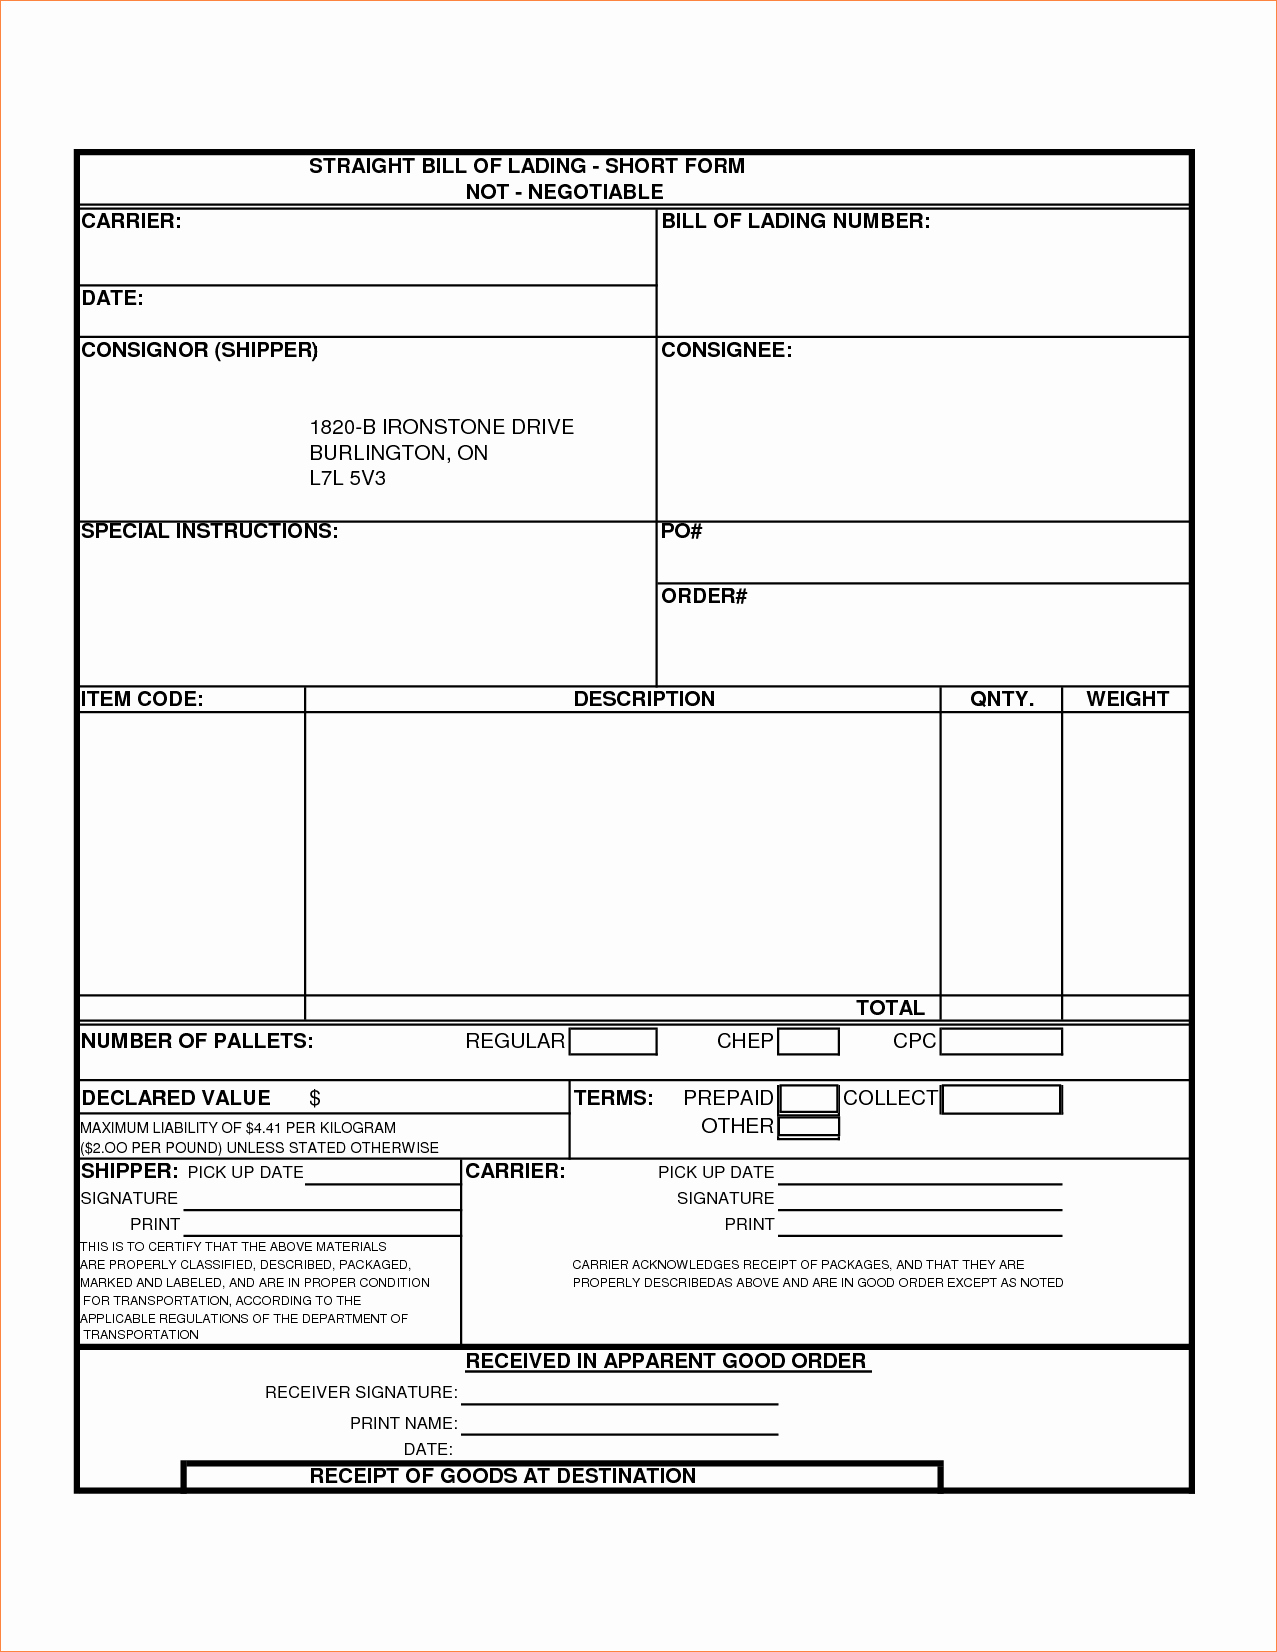 3 Bill Of Lading formreport Template Document